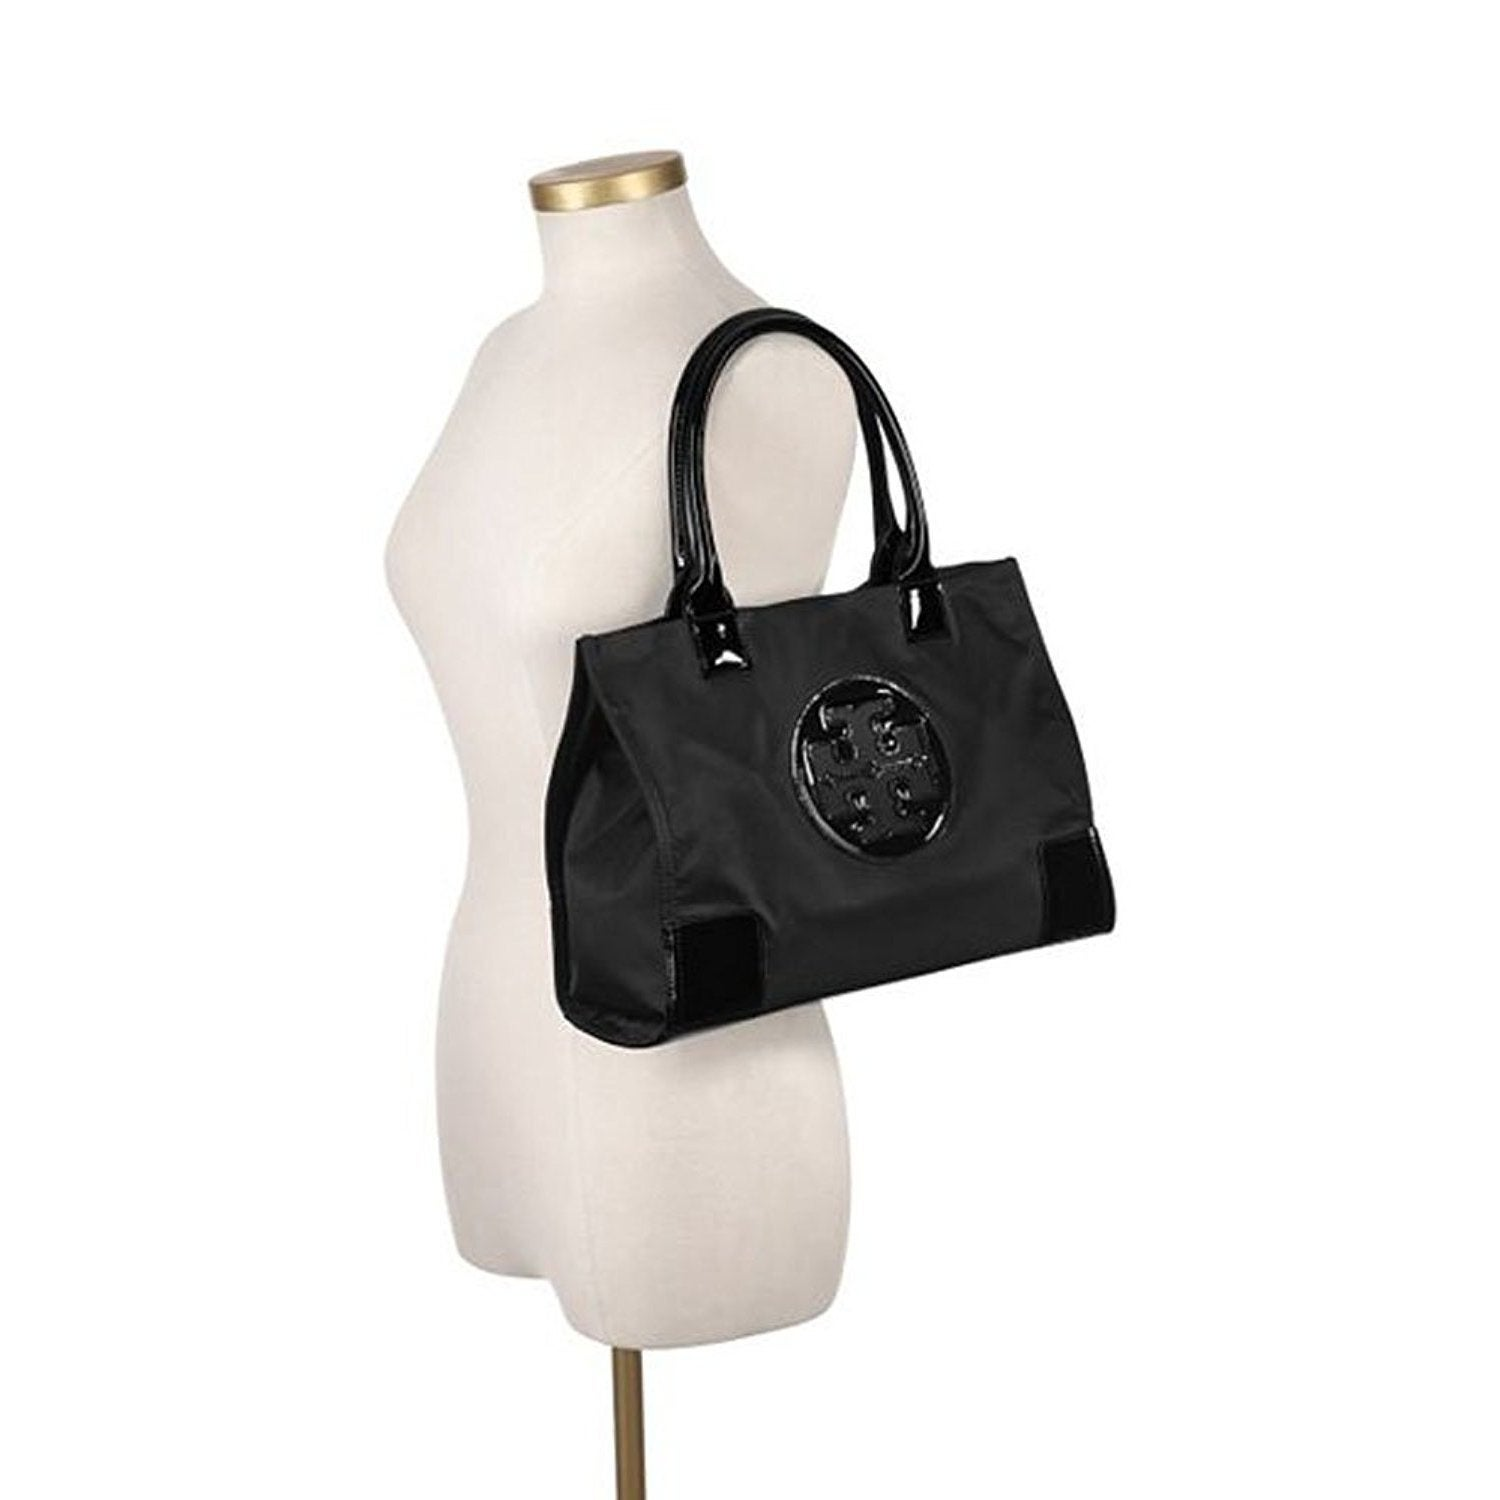 97c8759c6d8 Shop Tory Burch Mini Ella Black Nylon Tote - Free Shipping Today -  Overstock - 13077687